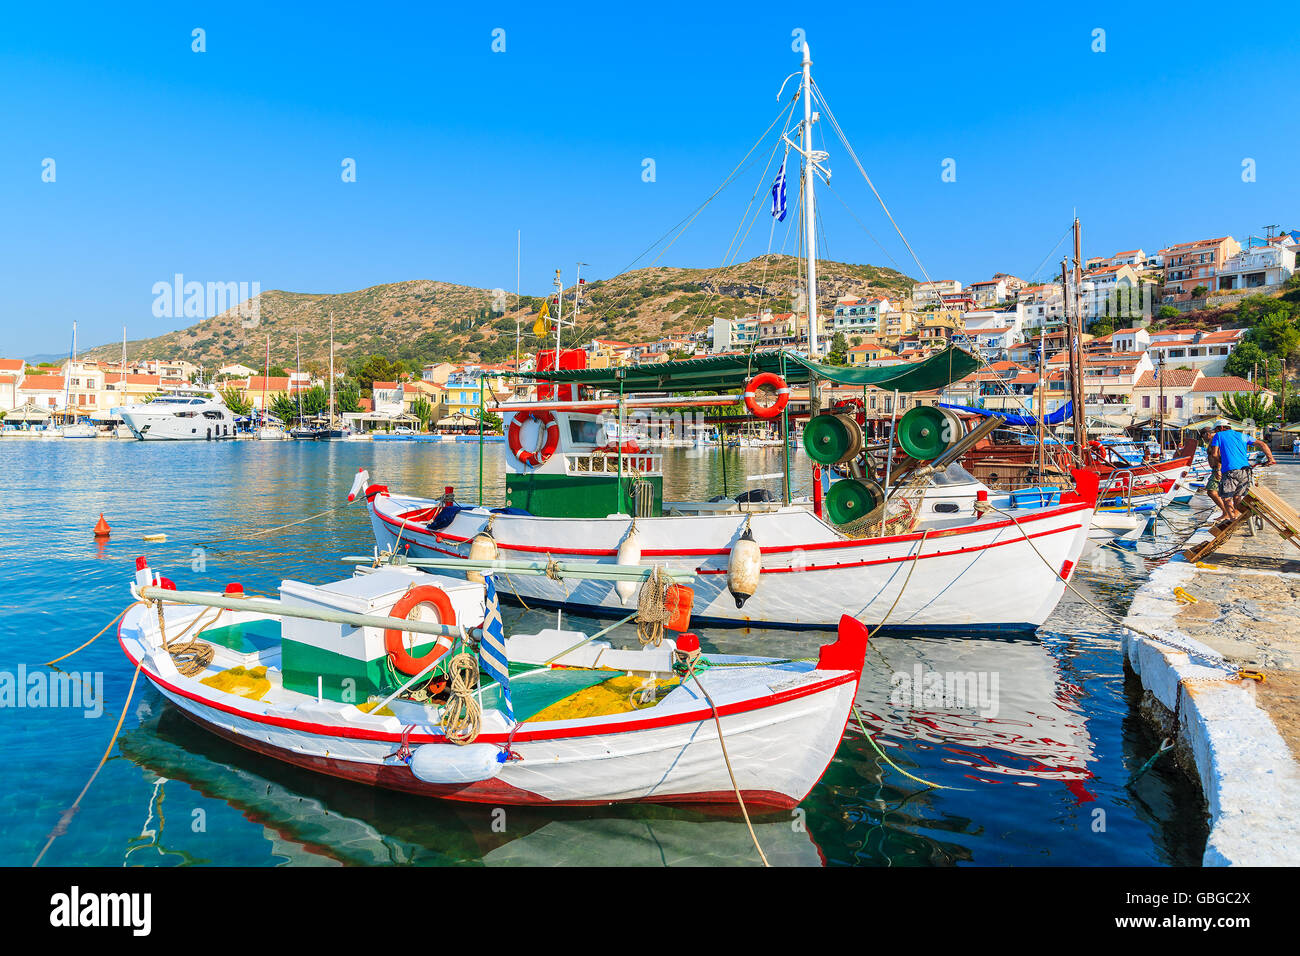 Typical colorful Greek fishing boats in Pythagorion port on Samos island, Greece Stock Photo